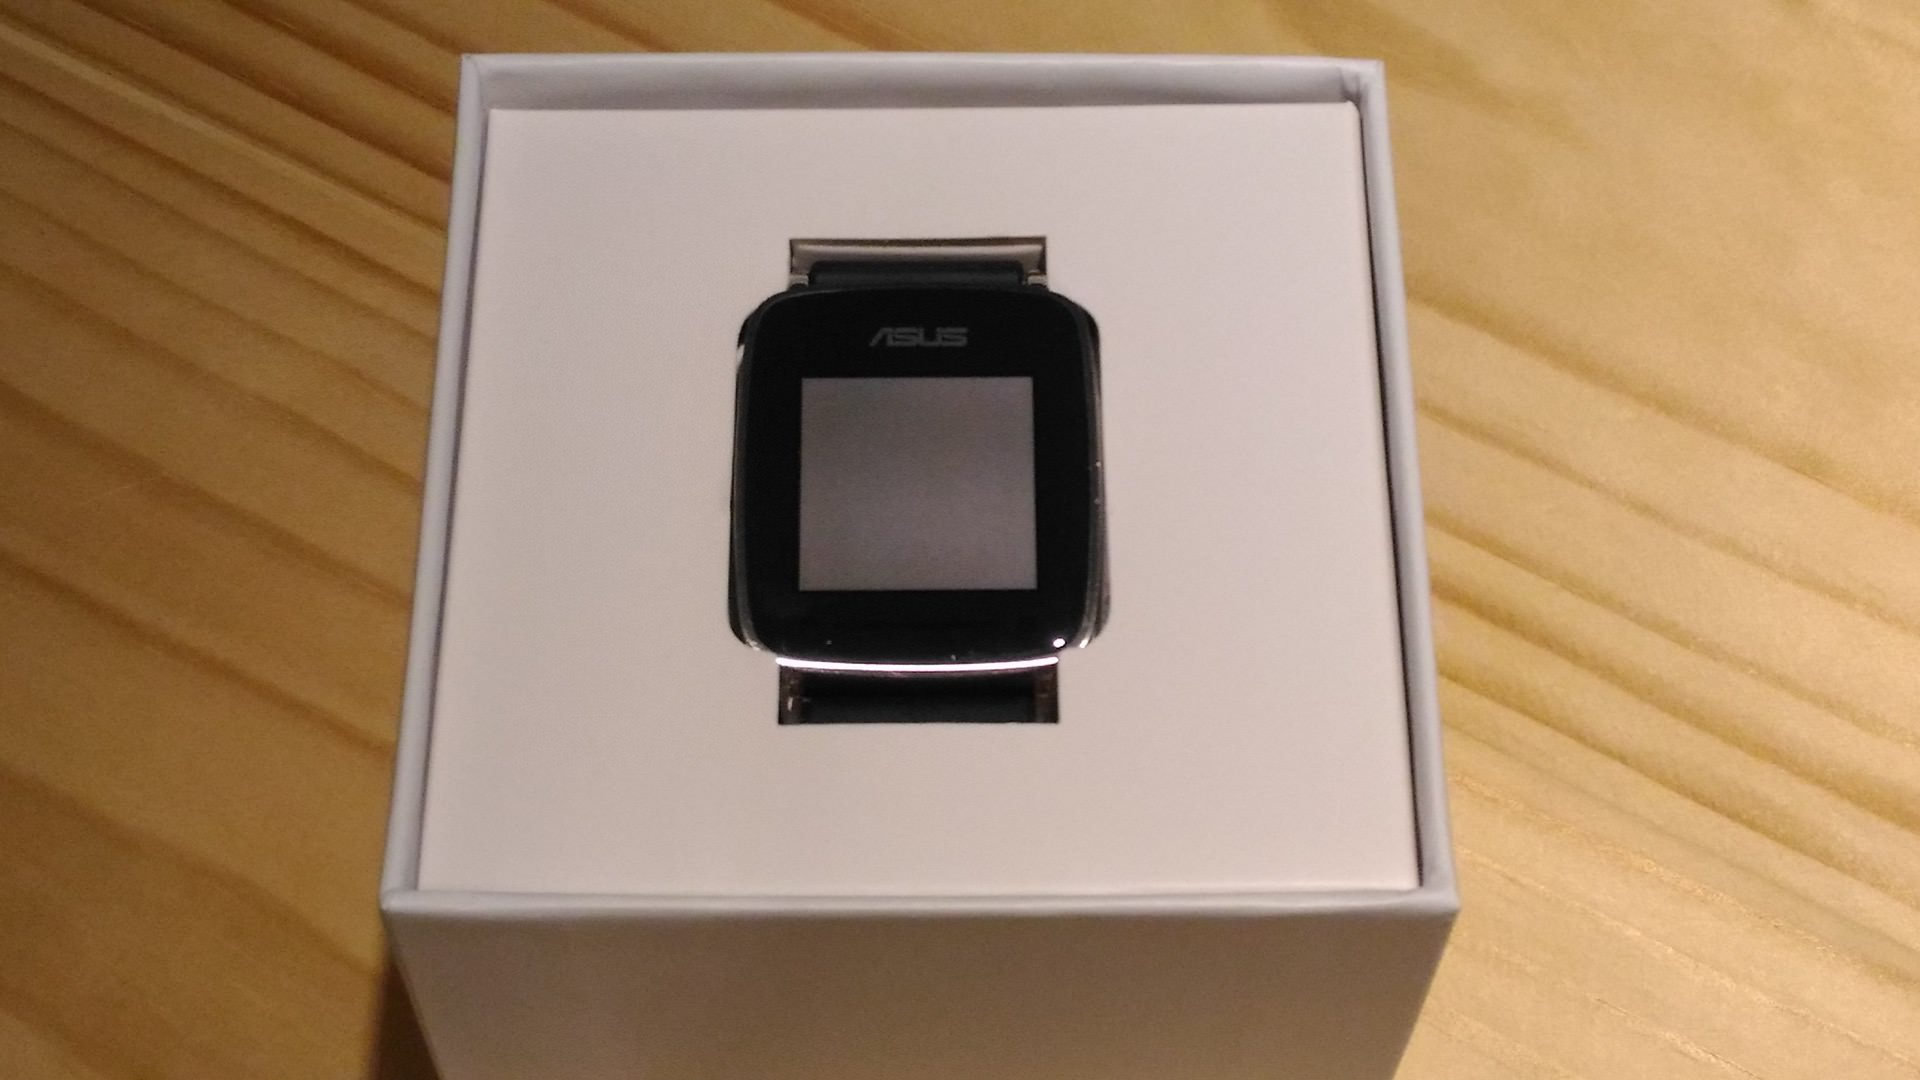 ASUS VivoWatch 正面照